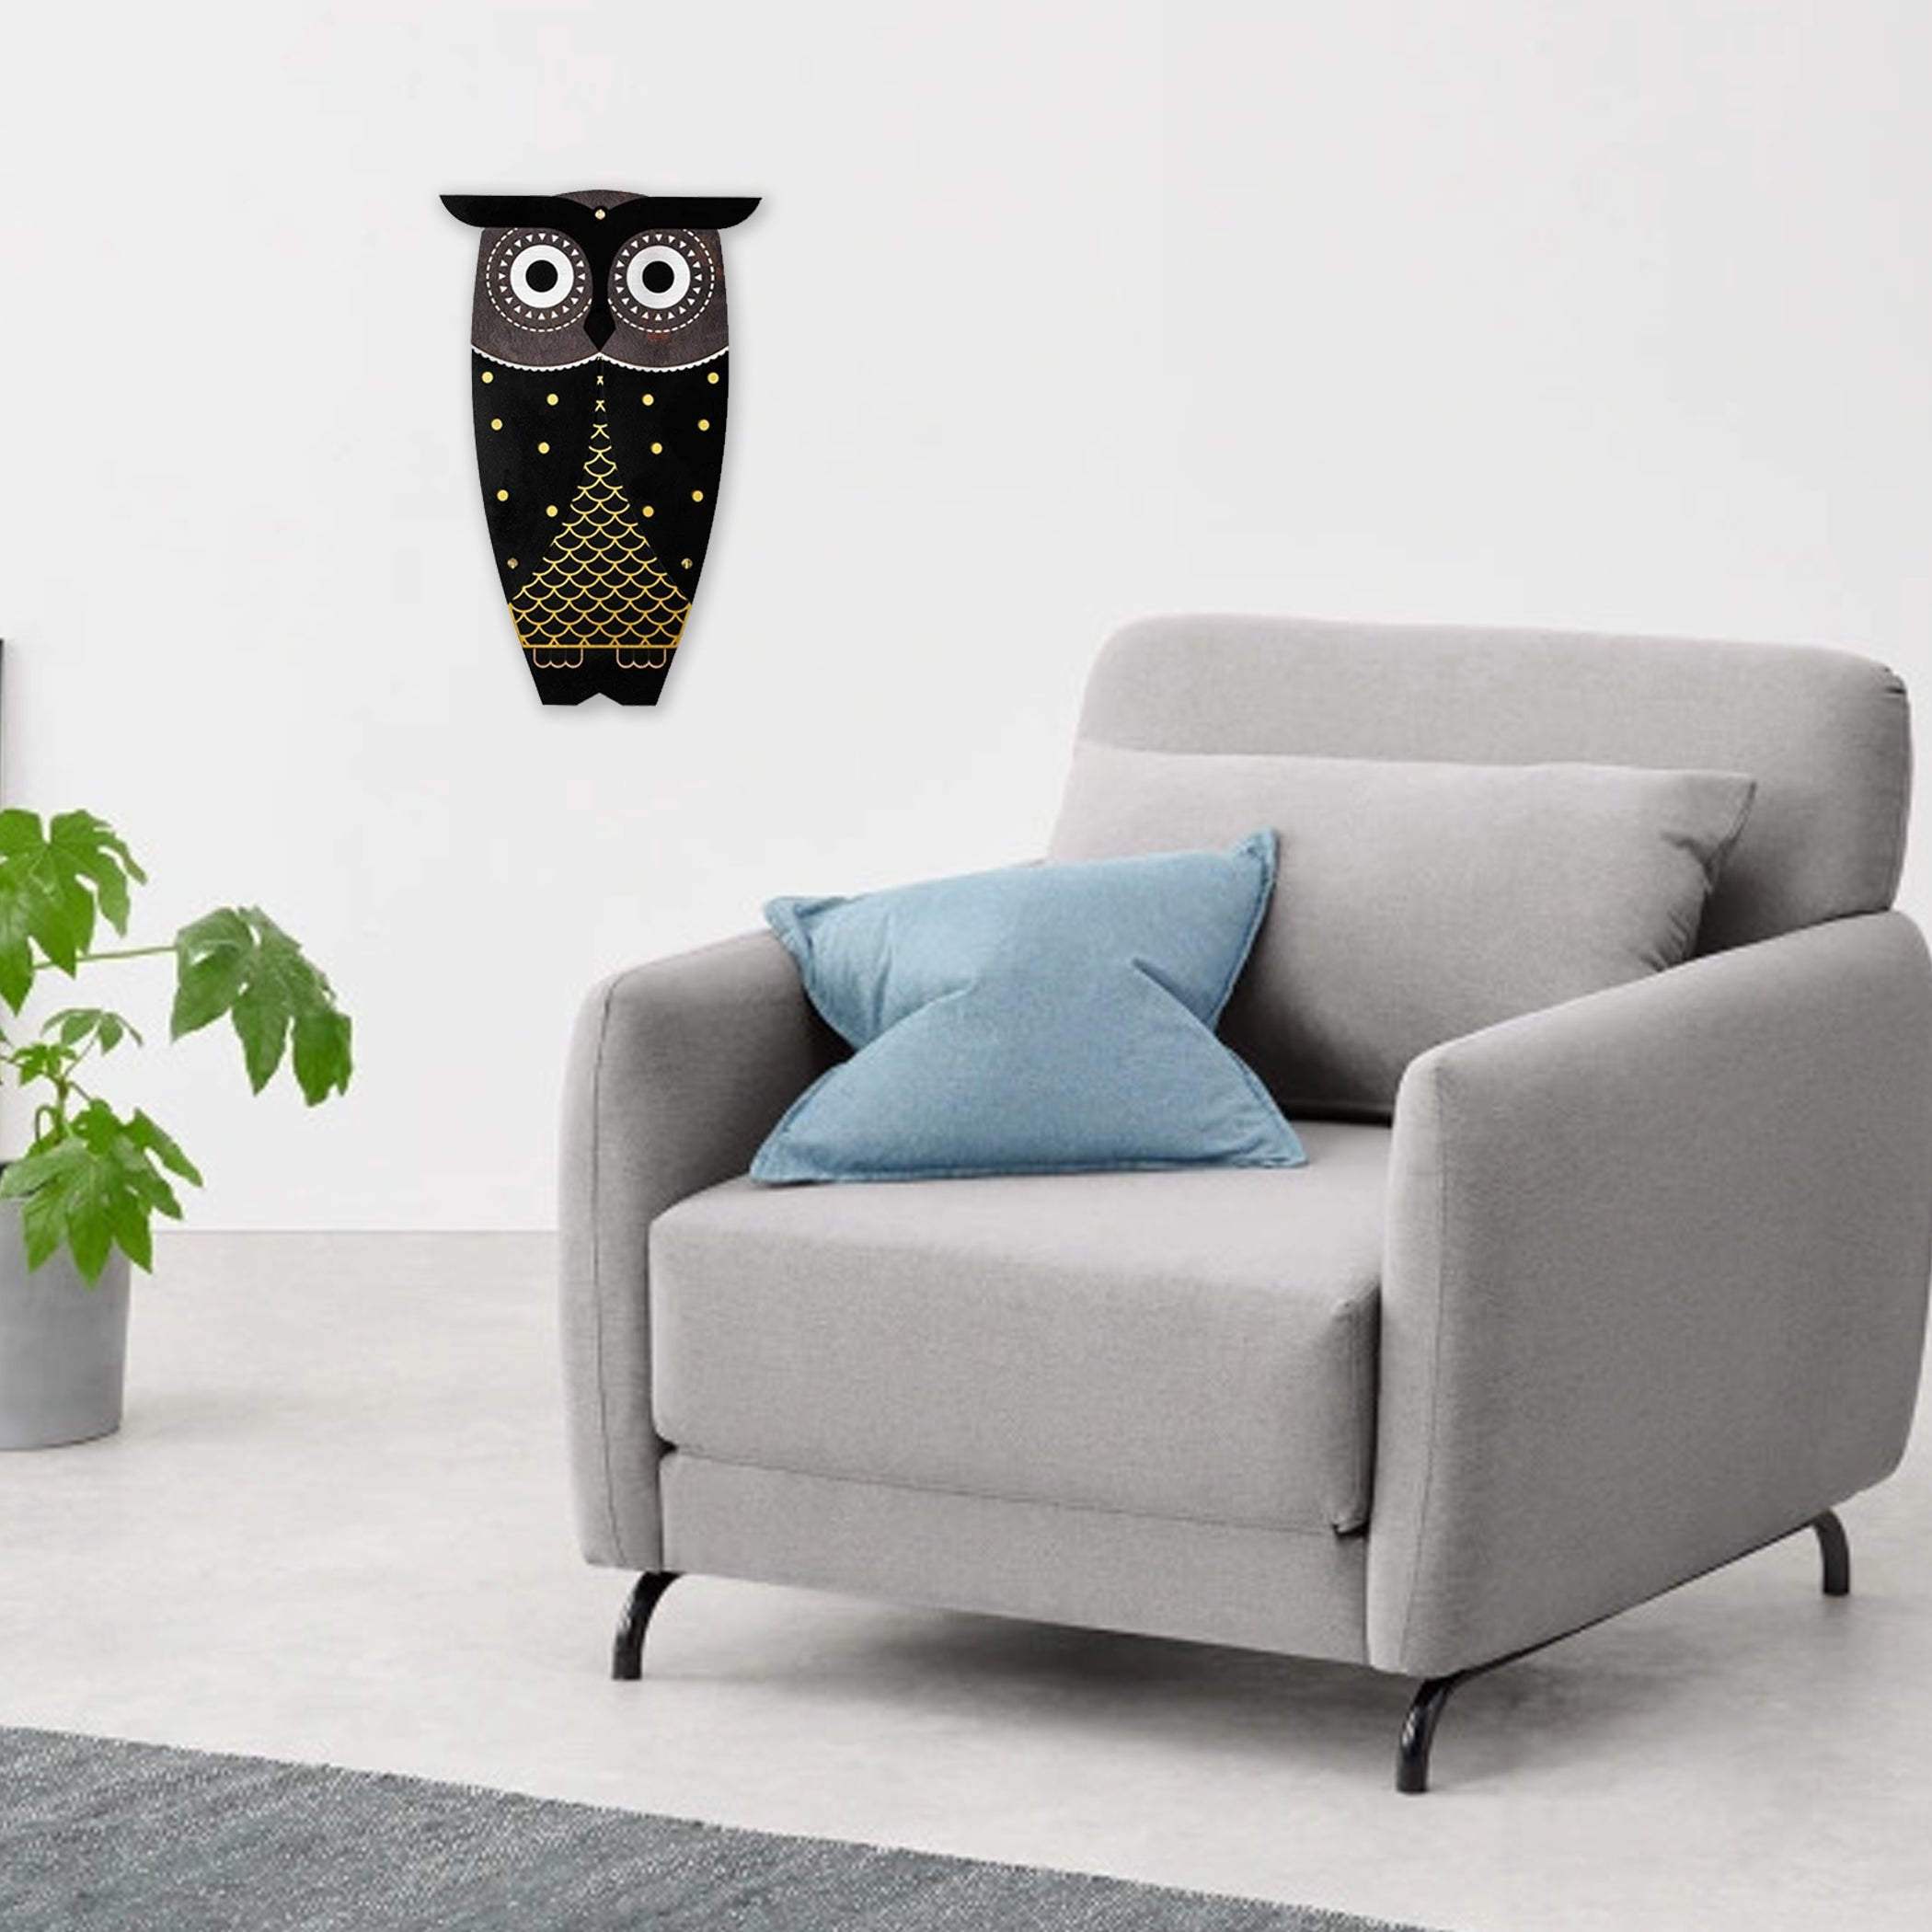 Owl Painting with Wood Wall Art